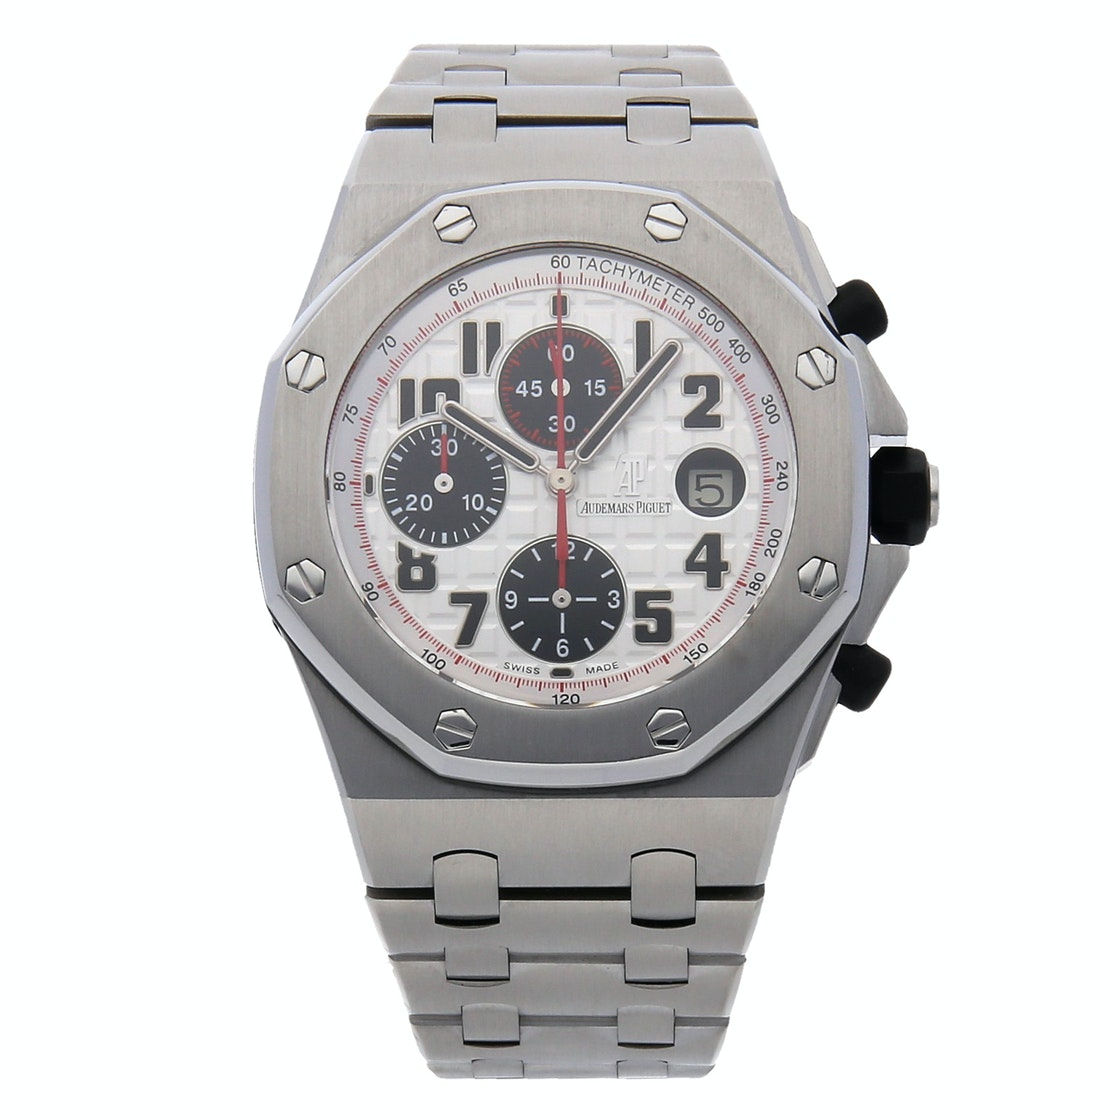 02ef4d85637 Audemars Piguet Royal Oak Offshore Chronograph 26170ST.OO.D101CR.02